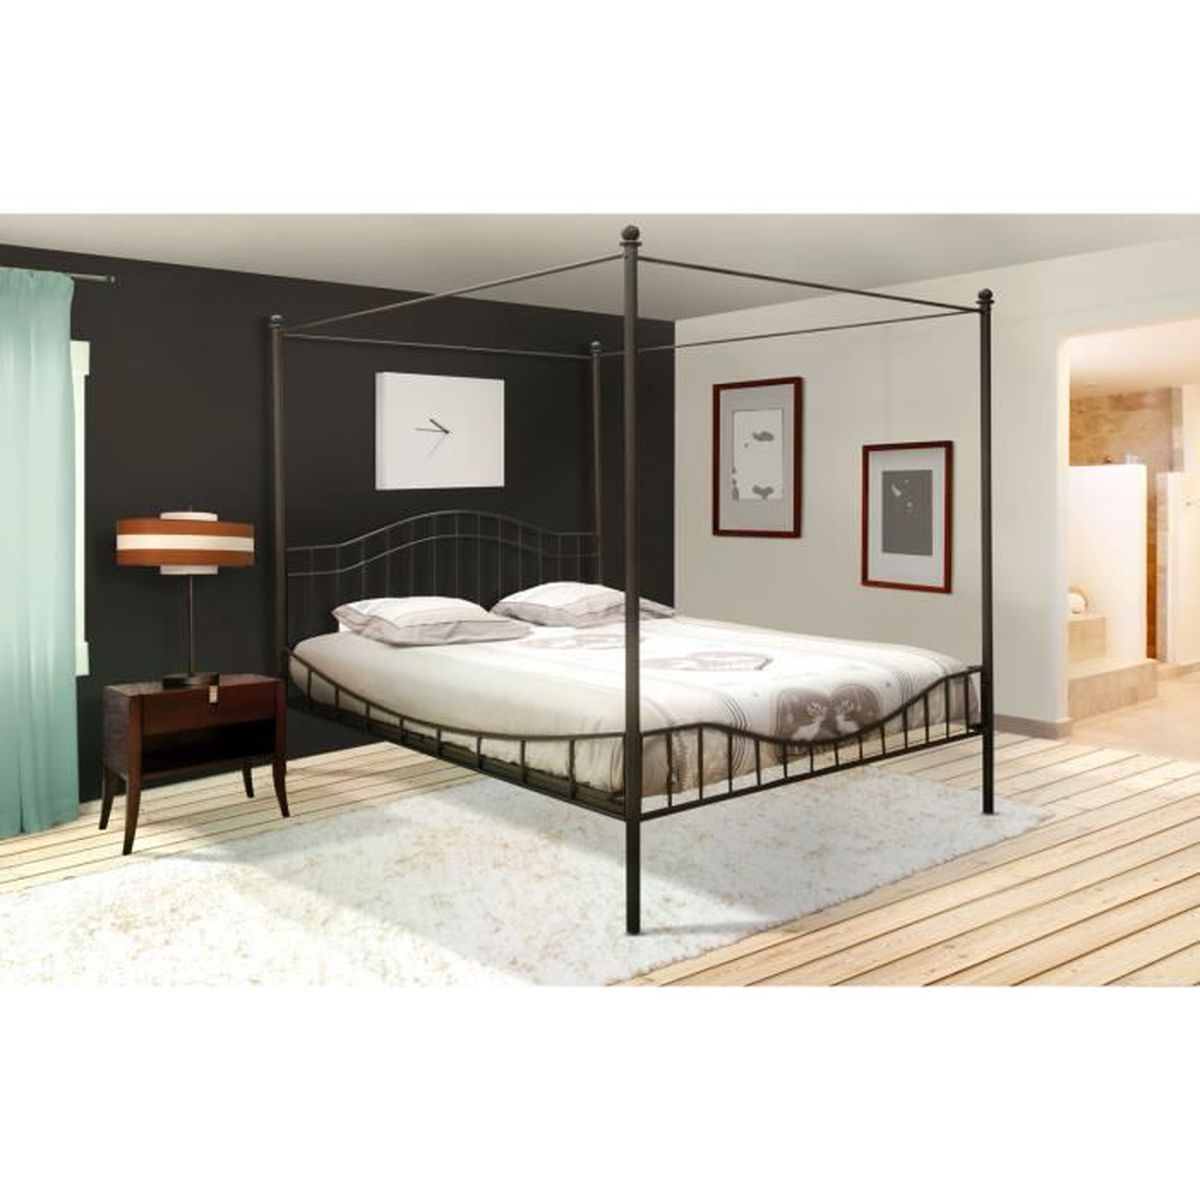 lit baldaquin 2 personnes 160x200 cm noir avec sommier achat vente lit a baldaquin lit. Black Bedroom Furniture Sets. Home Design Ideas